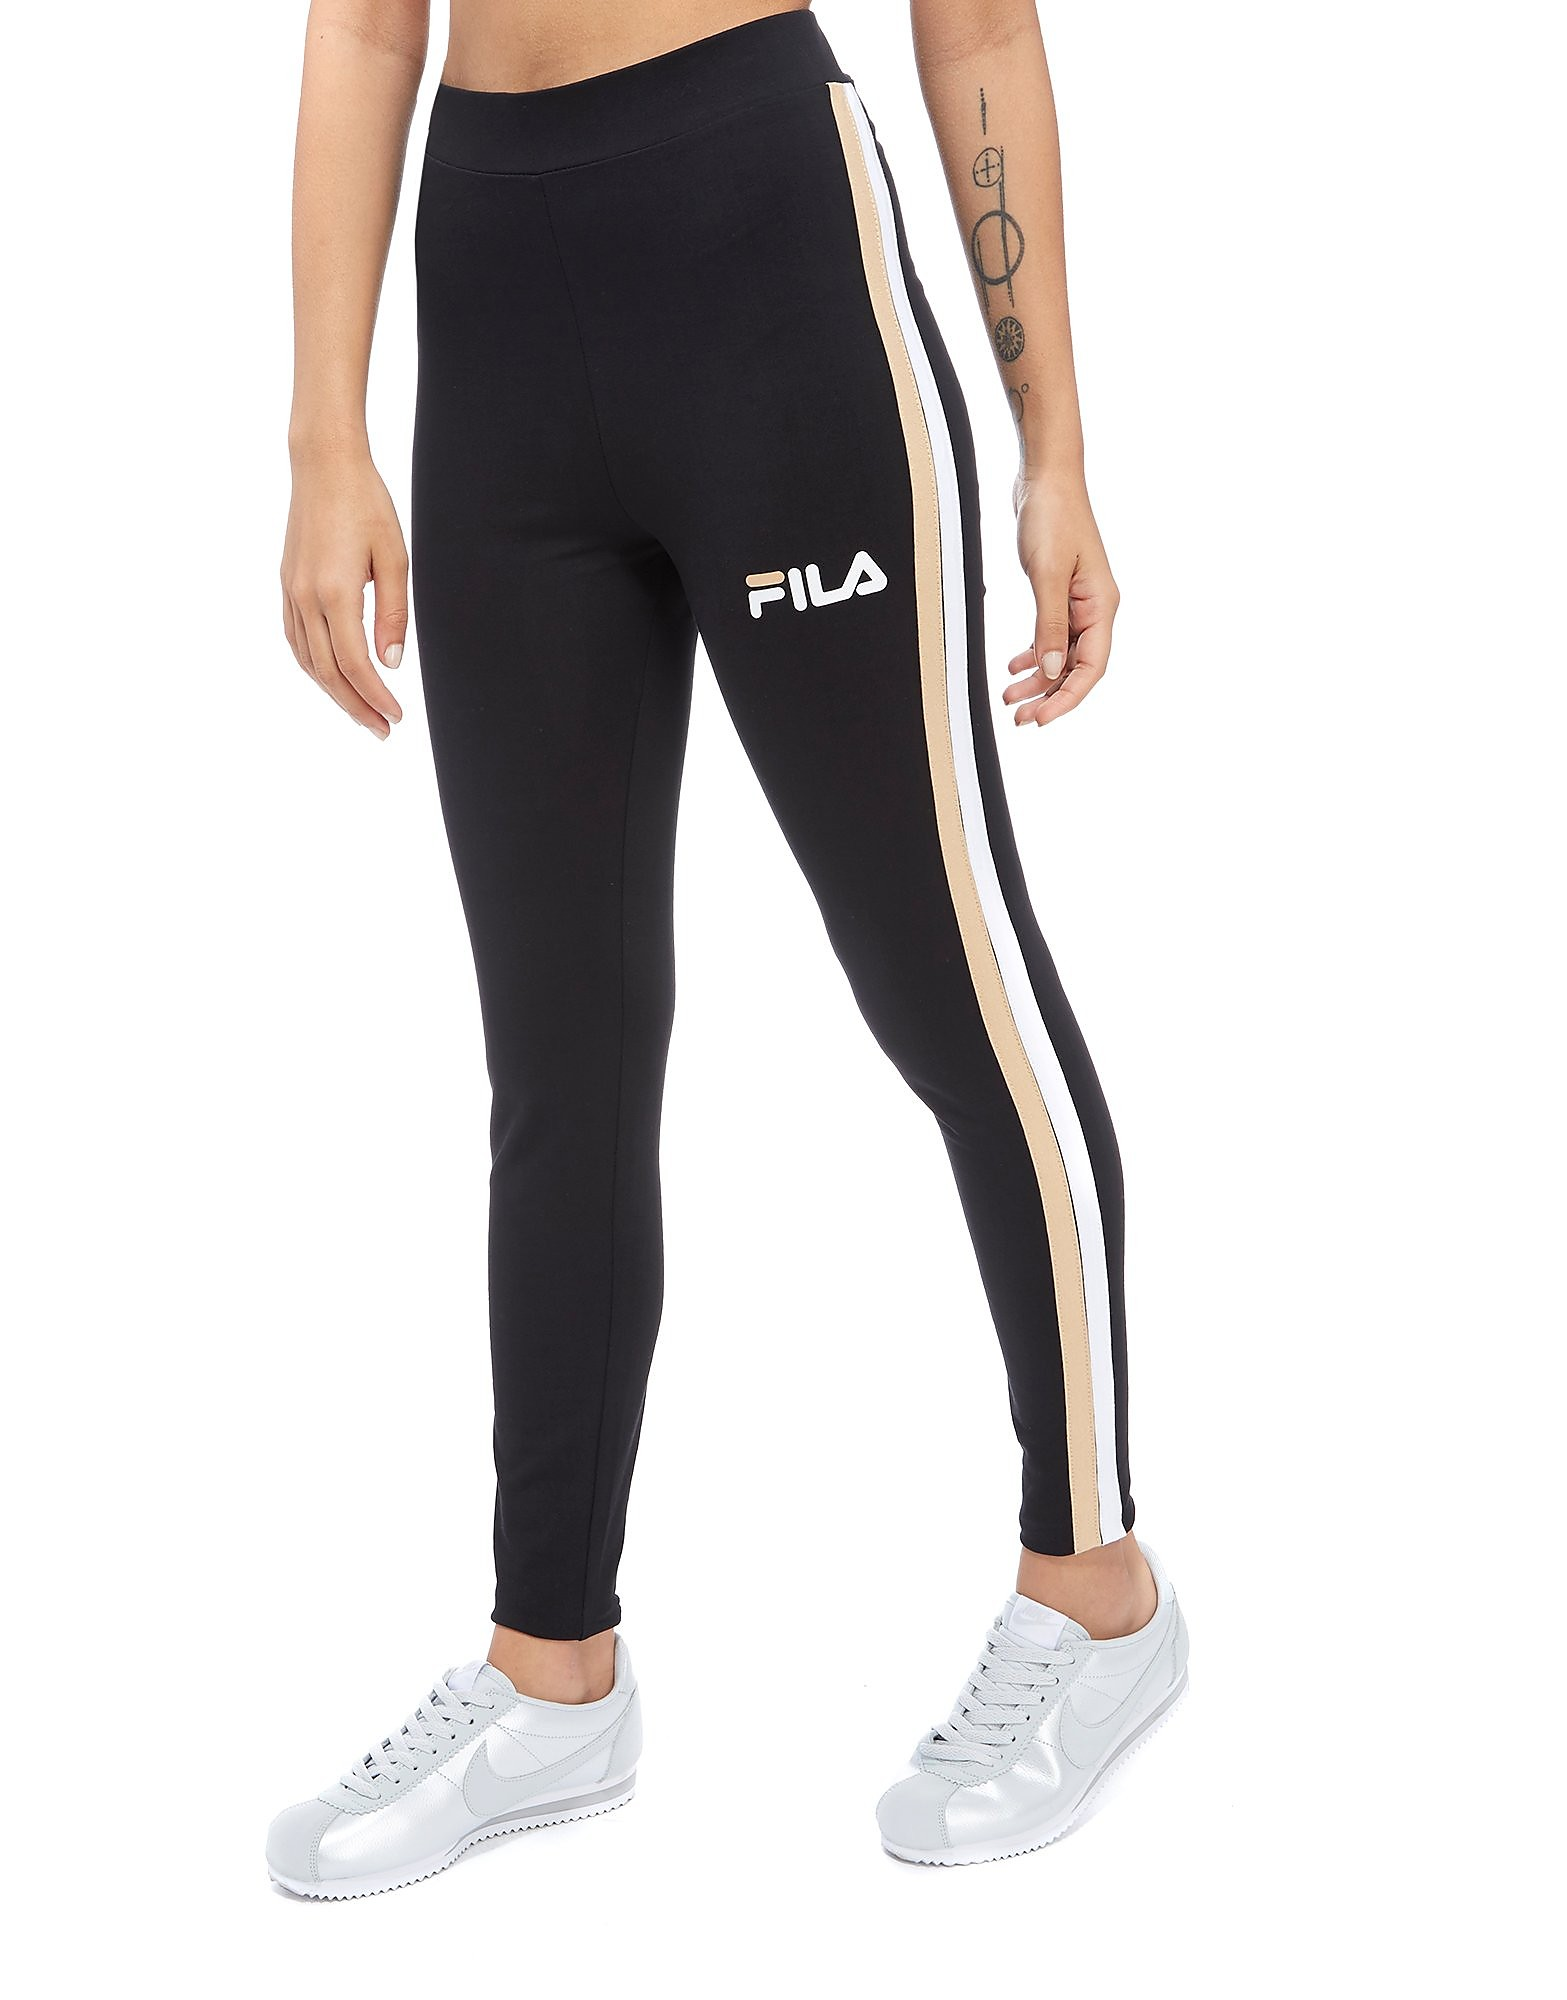 Fila Stripe Leggings